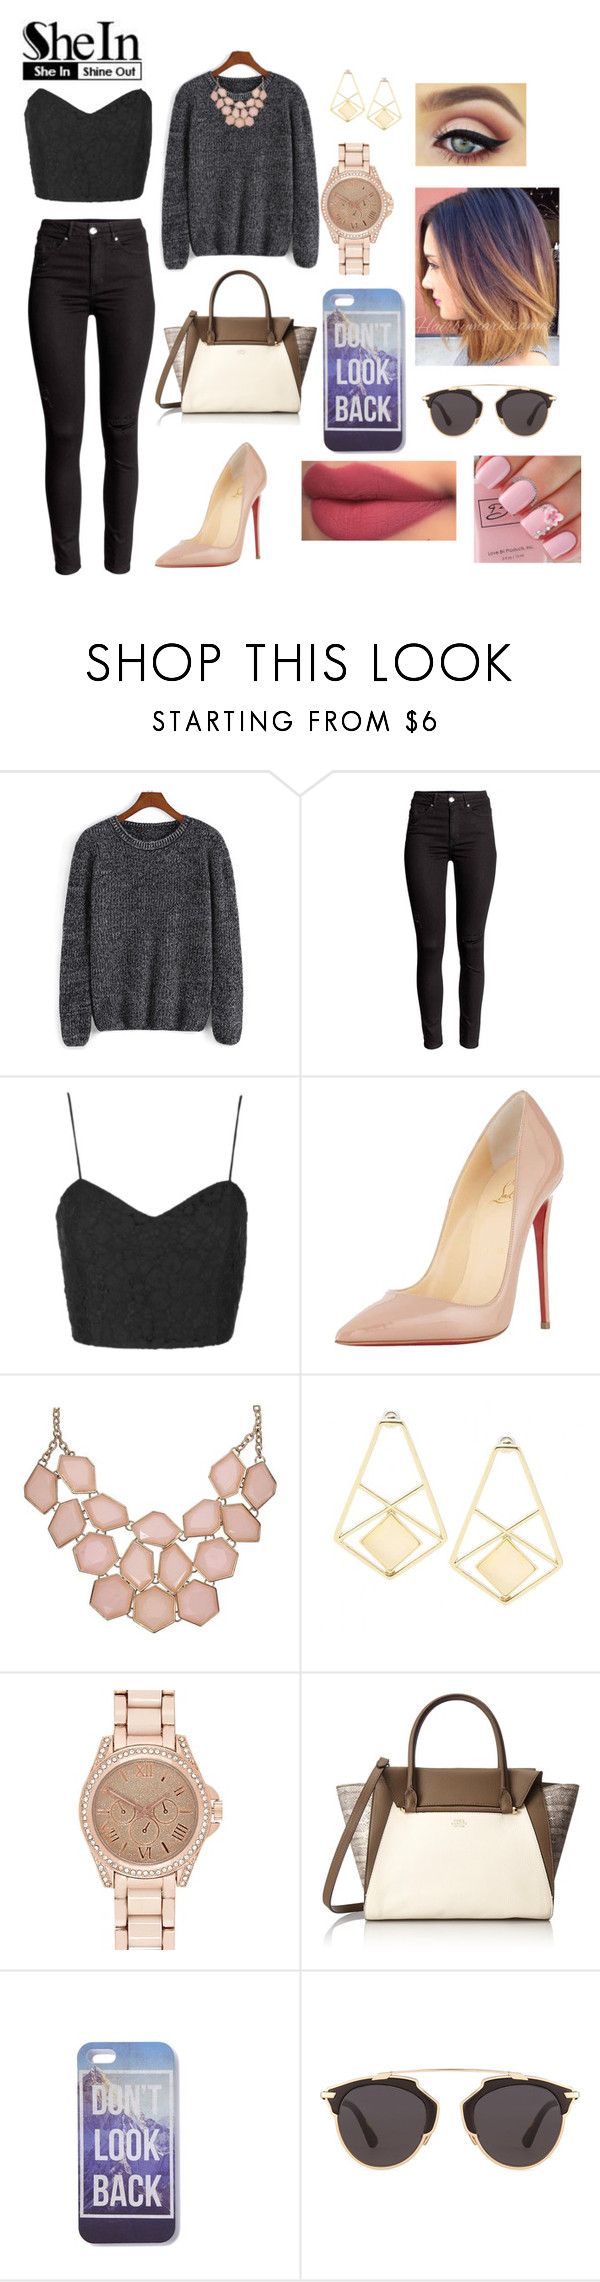 """Untitled #350"" by anacacho ❤ liked on Polyvore featuring Topshop, Christian Louboutin, River Island, Vince Camuto, Christian Dior, women's clothing, women, female, woman and misses"